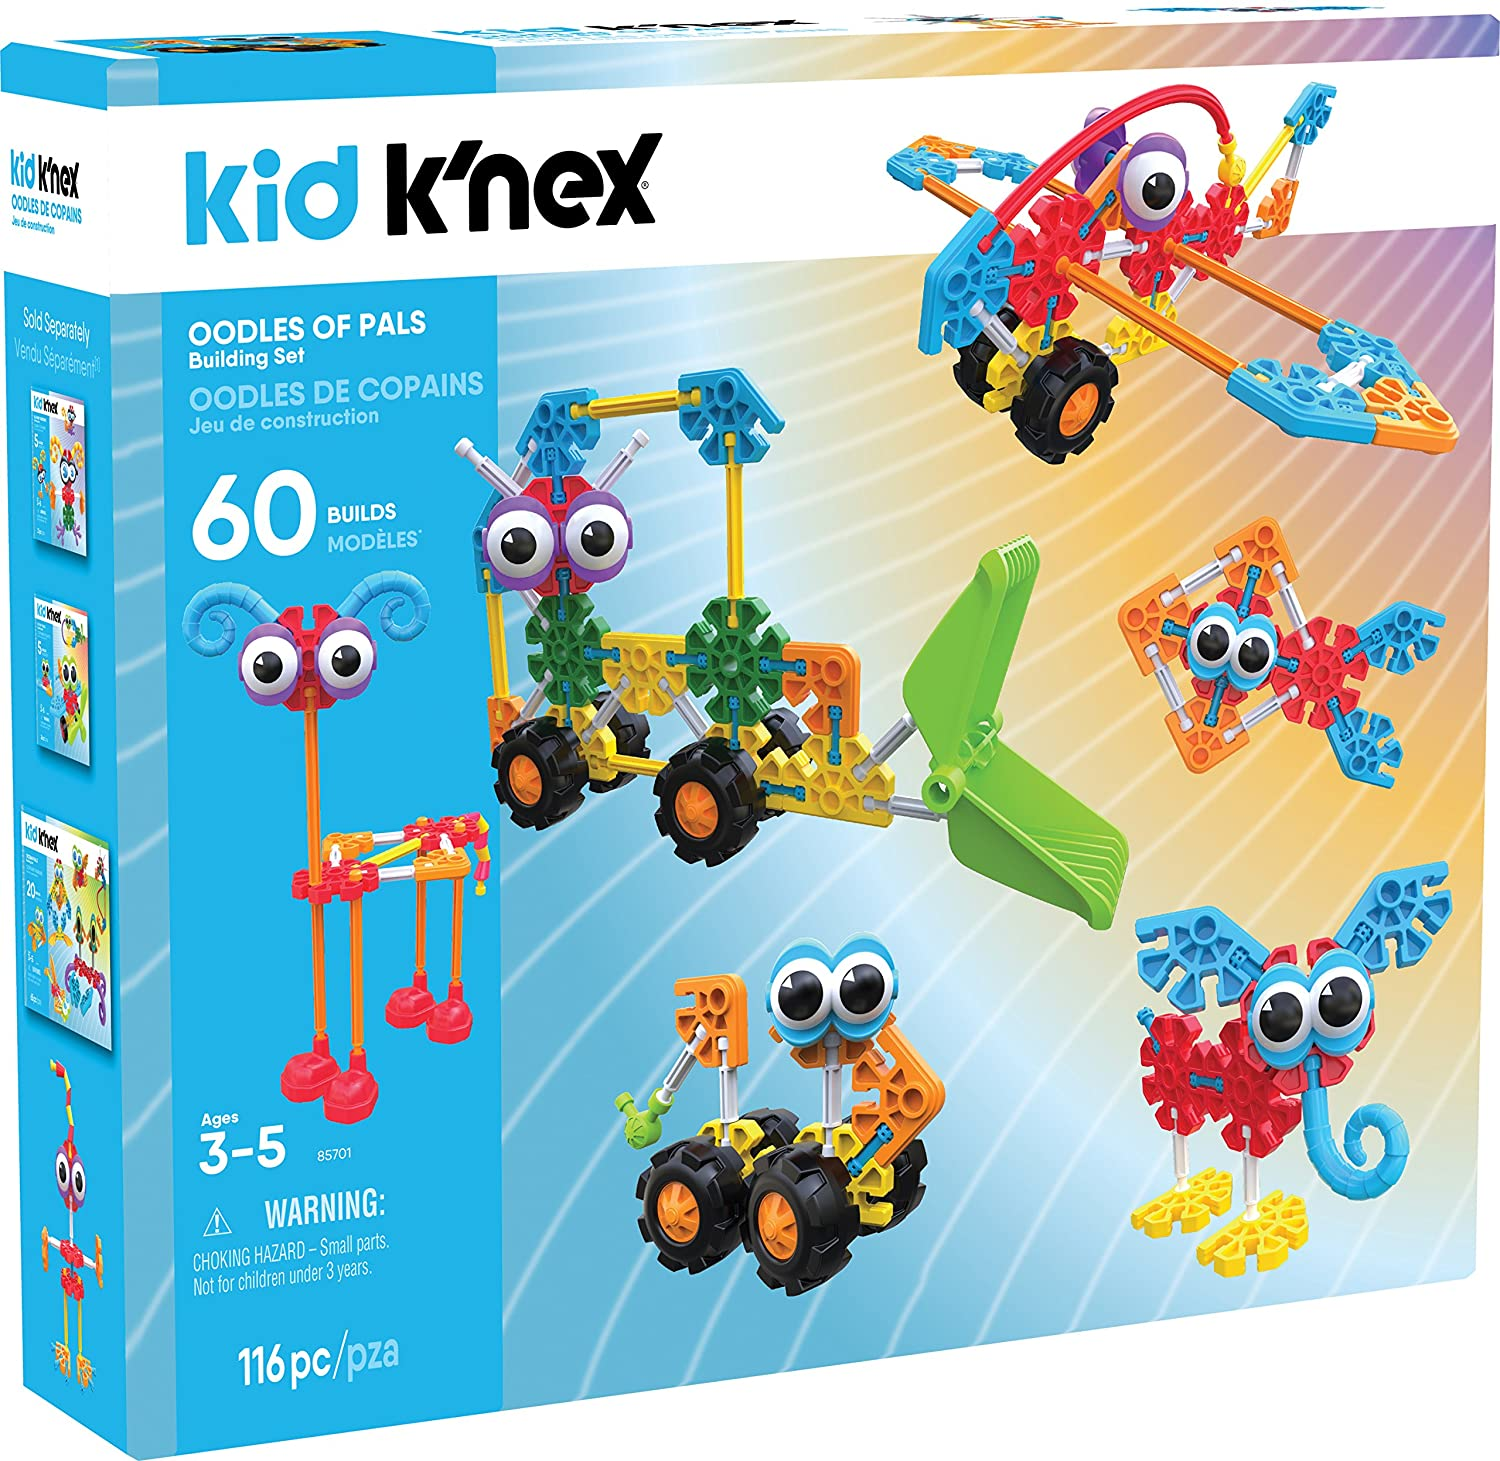 KID K'NEX – Oodles of Pals Building Set – 115 Pieces – Ages 3 and Up Preschool Educational Toy (Amazon Exclusive) K' NEX 85701